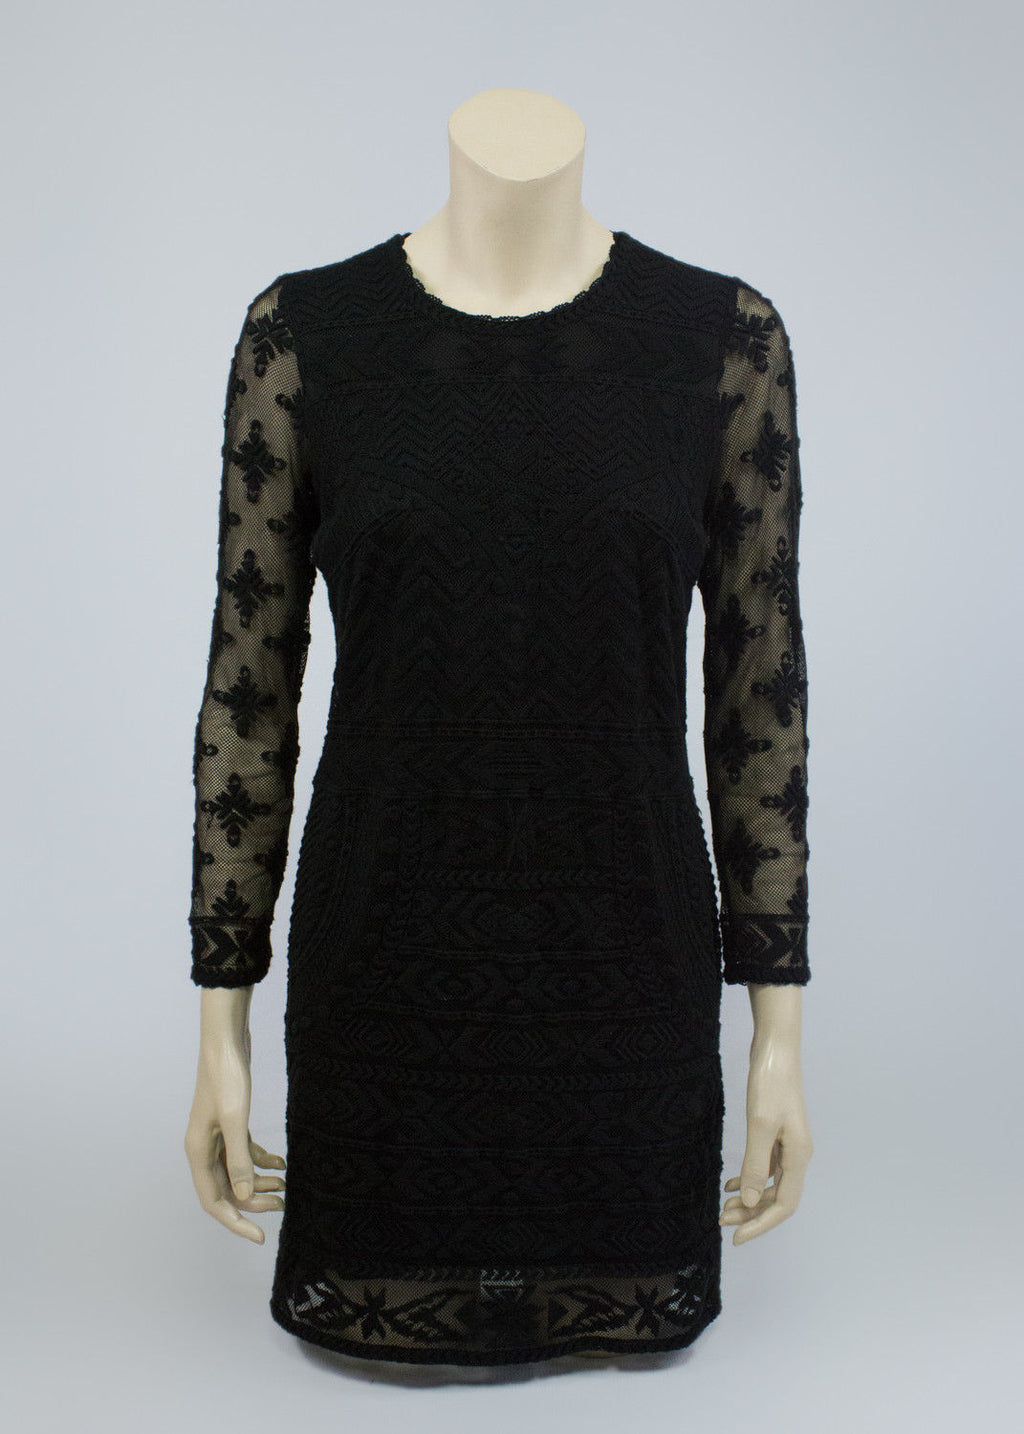 ISABEL MARANT x H&M Collaboration Black Lace Dress, SIZE M - secondfirst